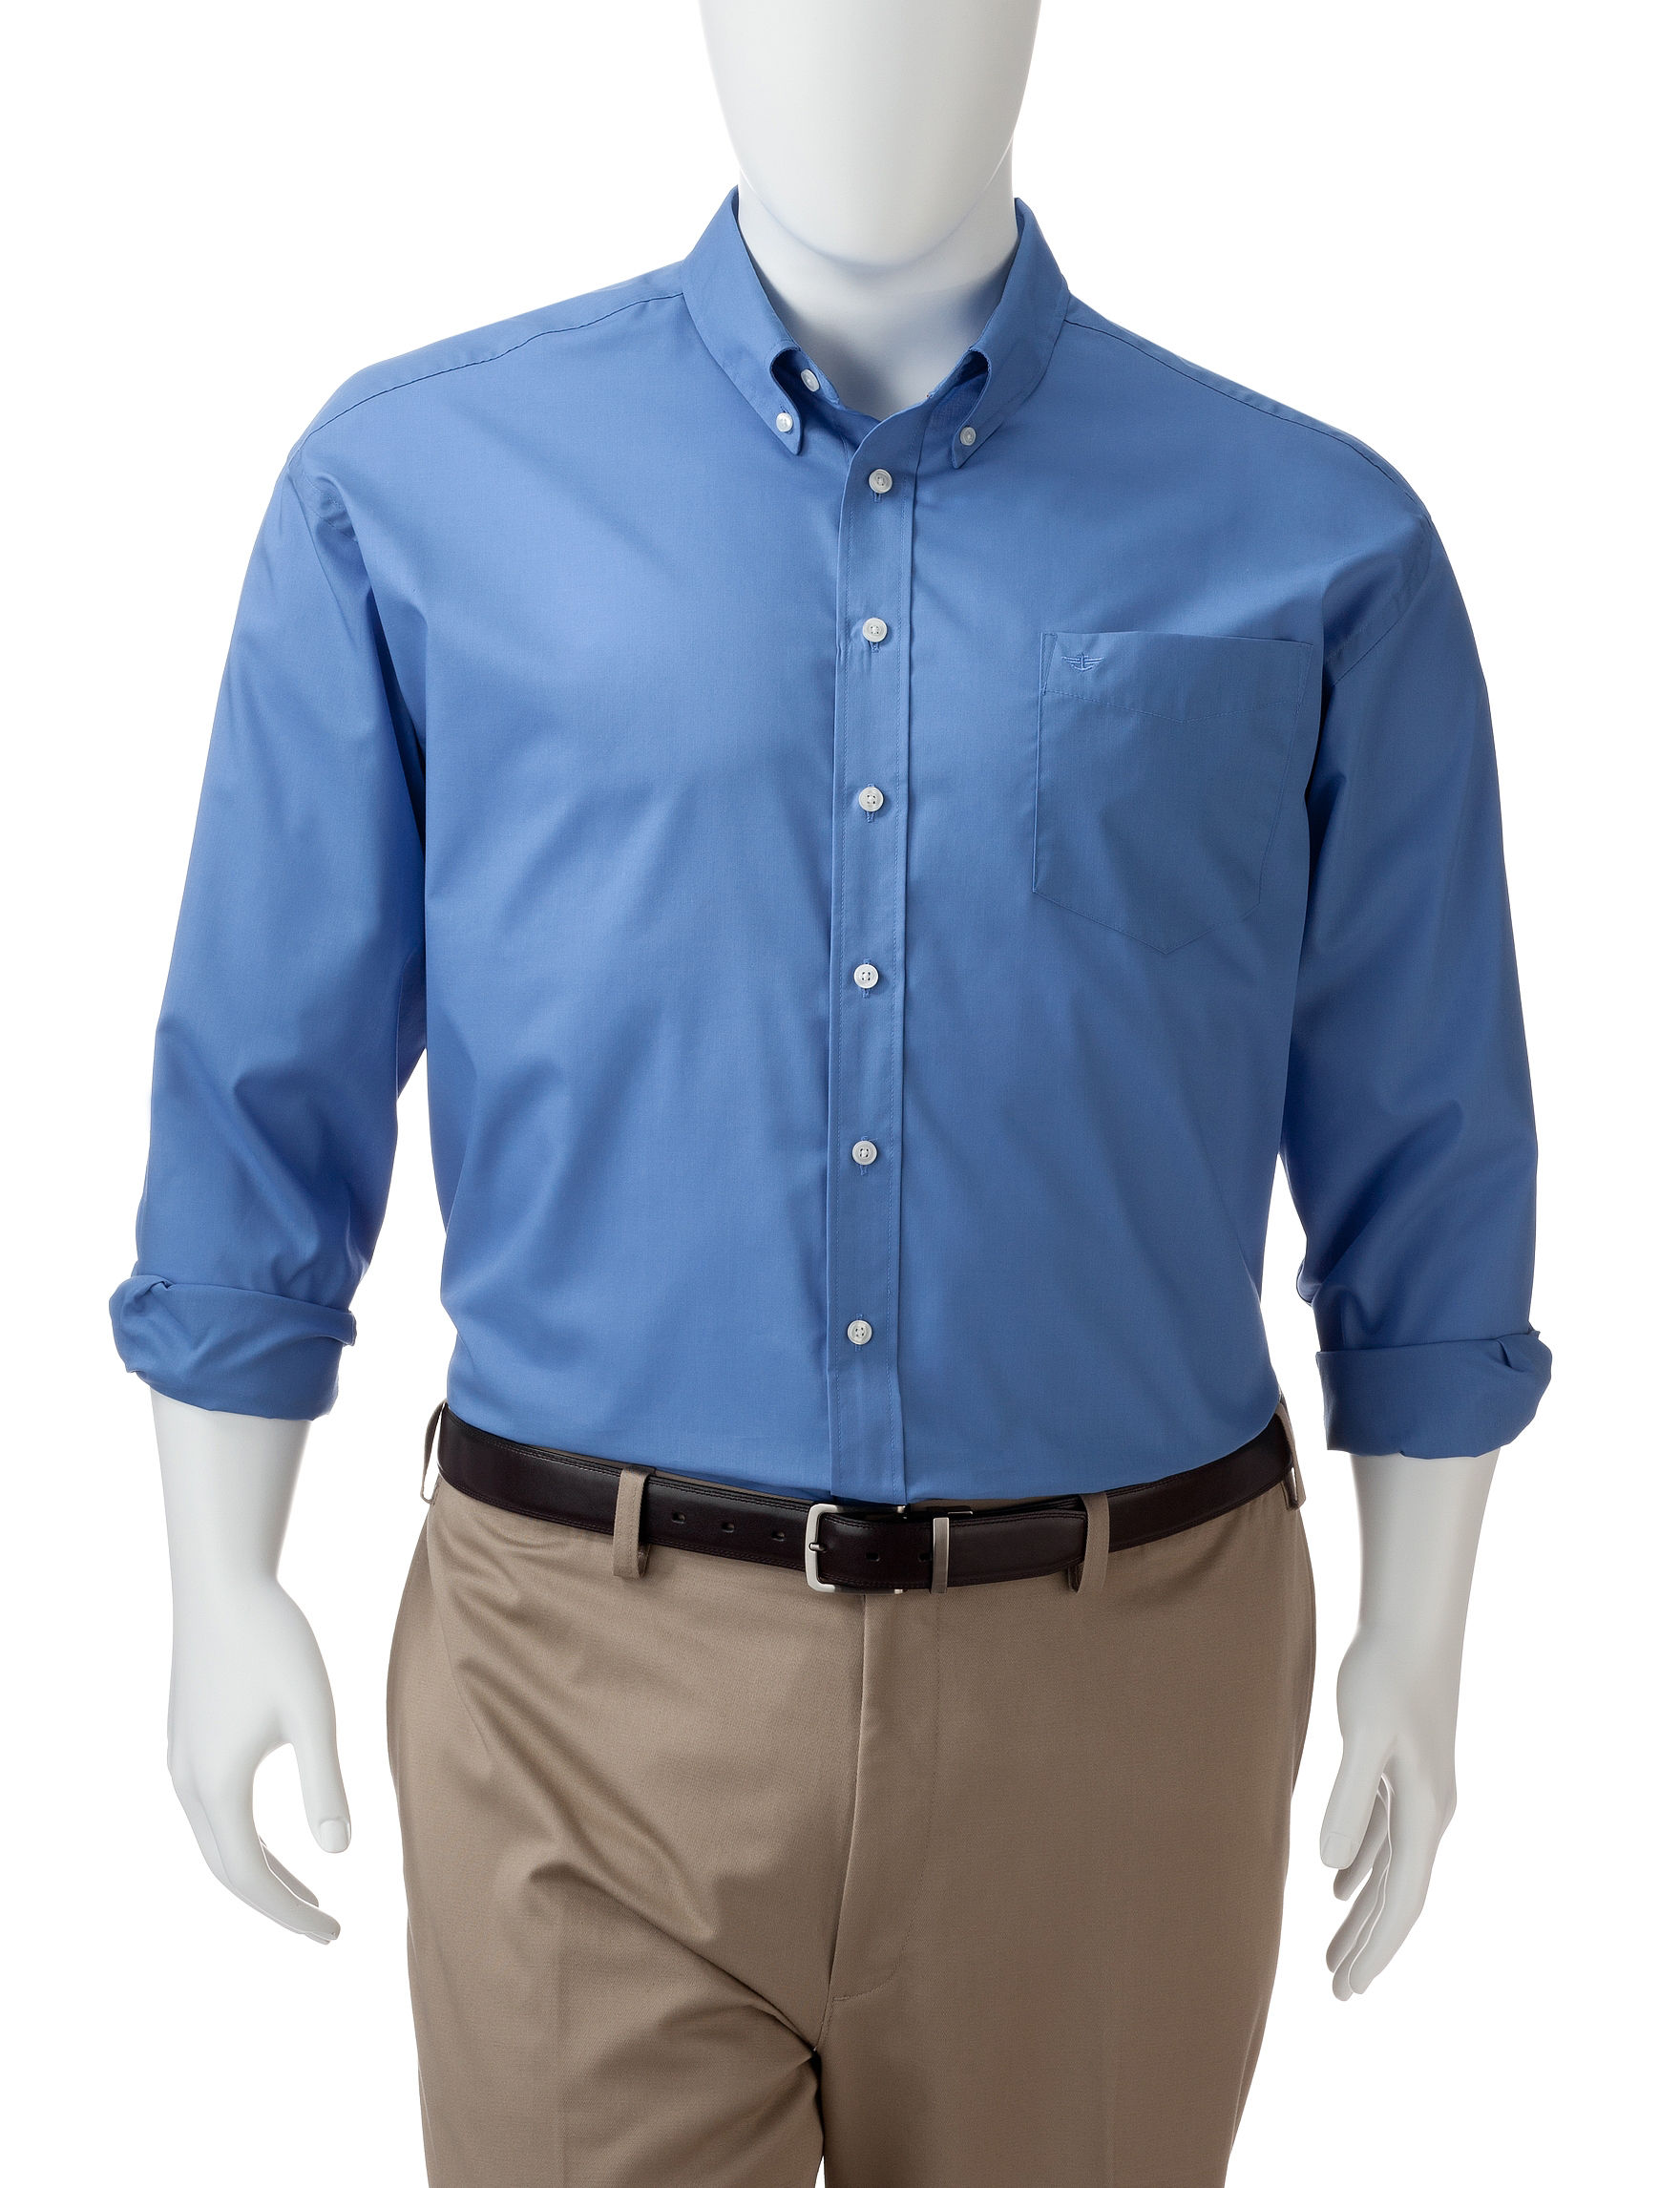 Dockers Light Blue Casual Button Down Shirts